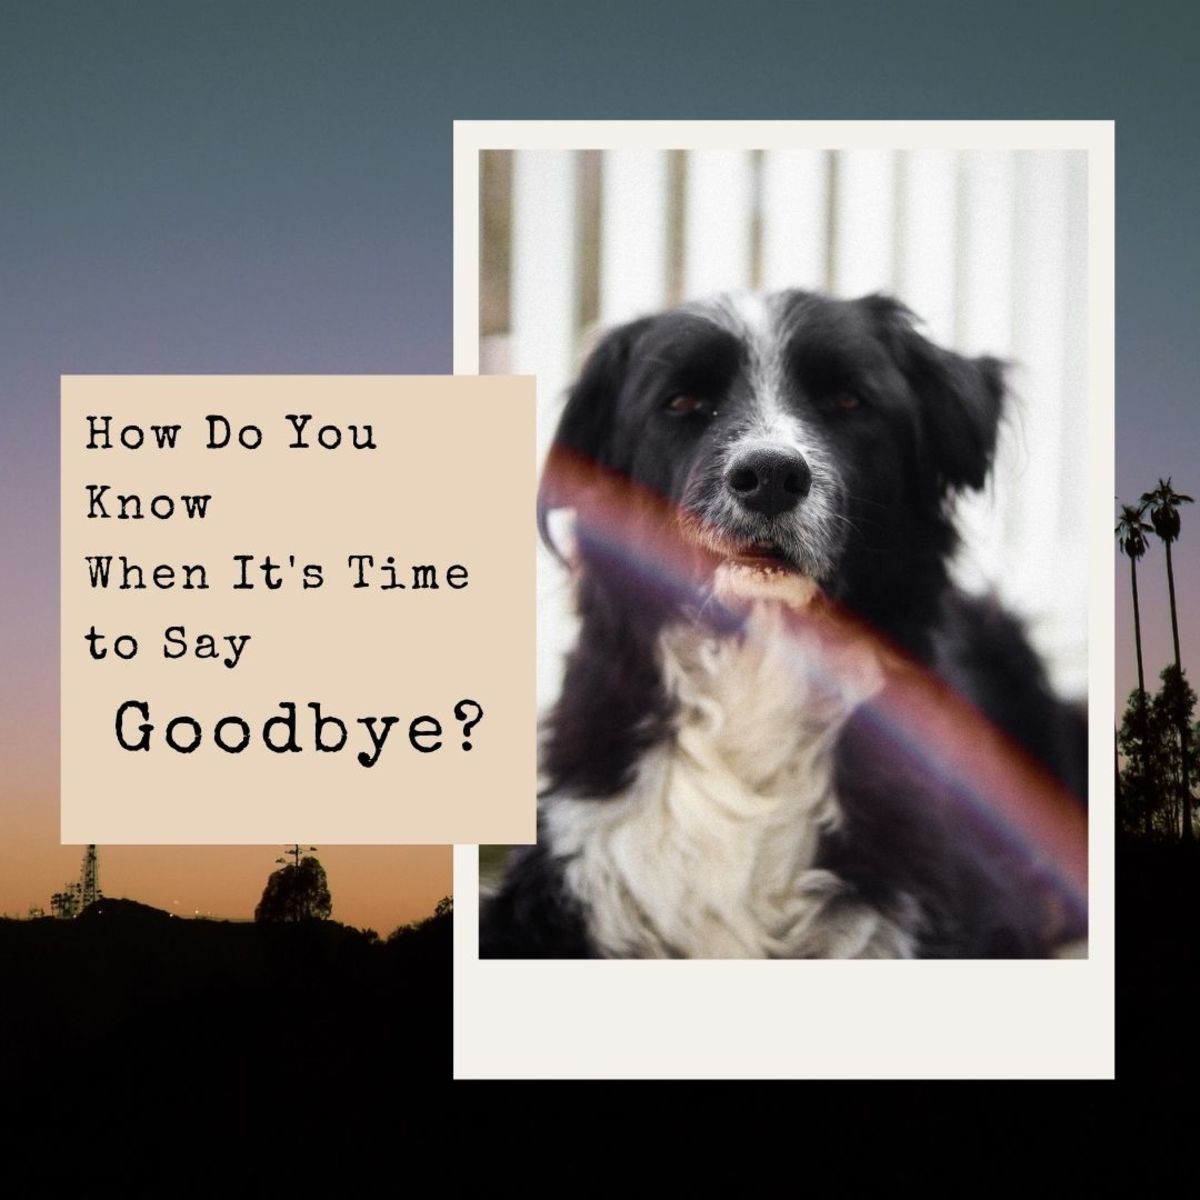 How do you know when it's time to say goodbye to your beloved friend?